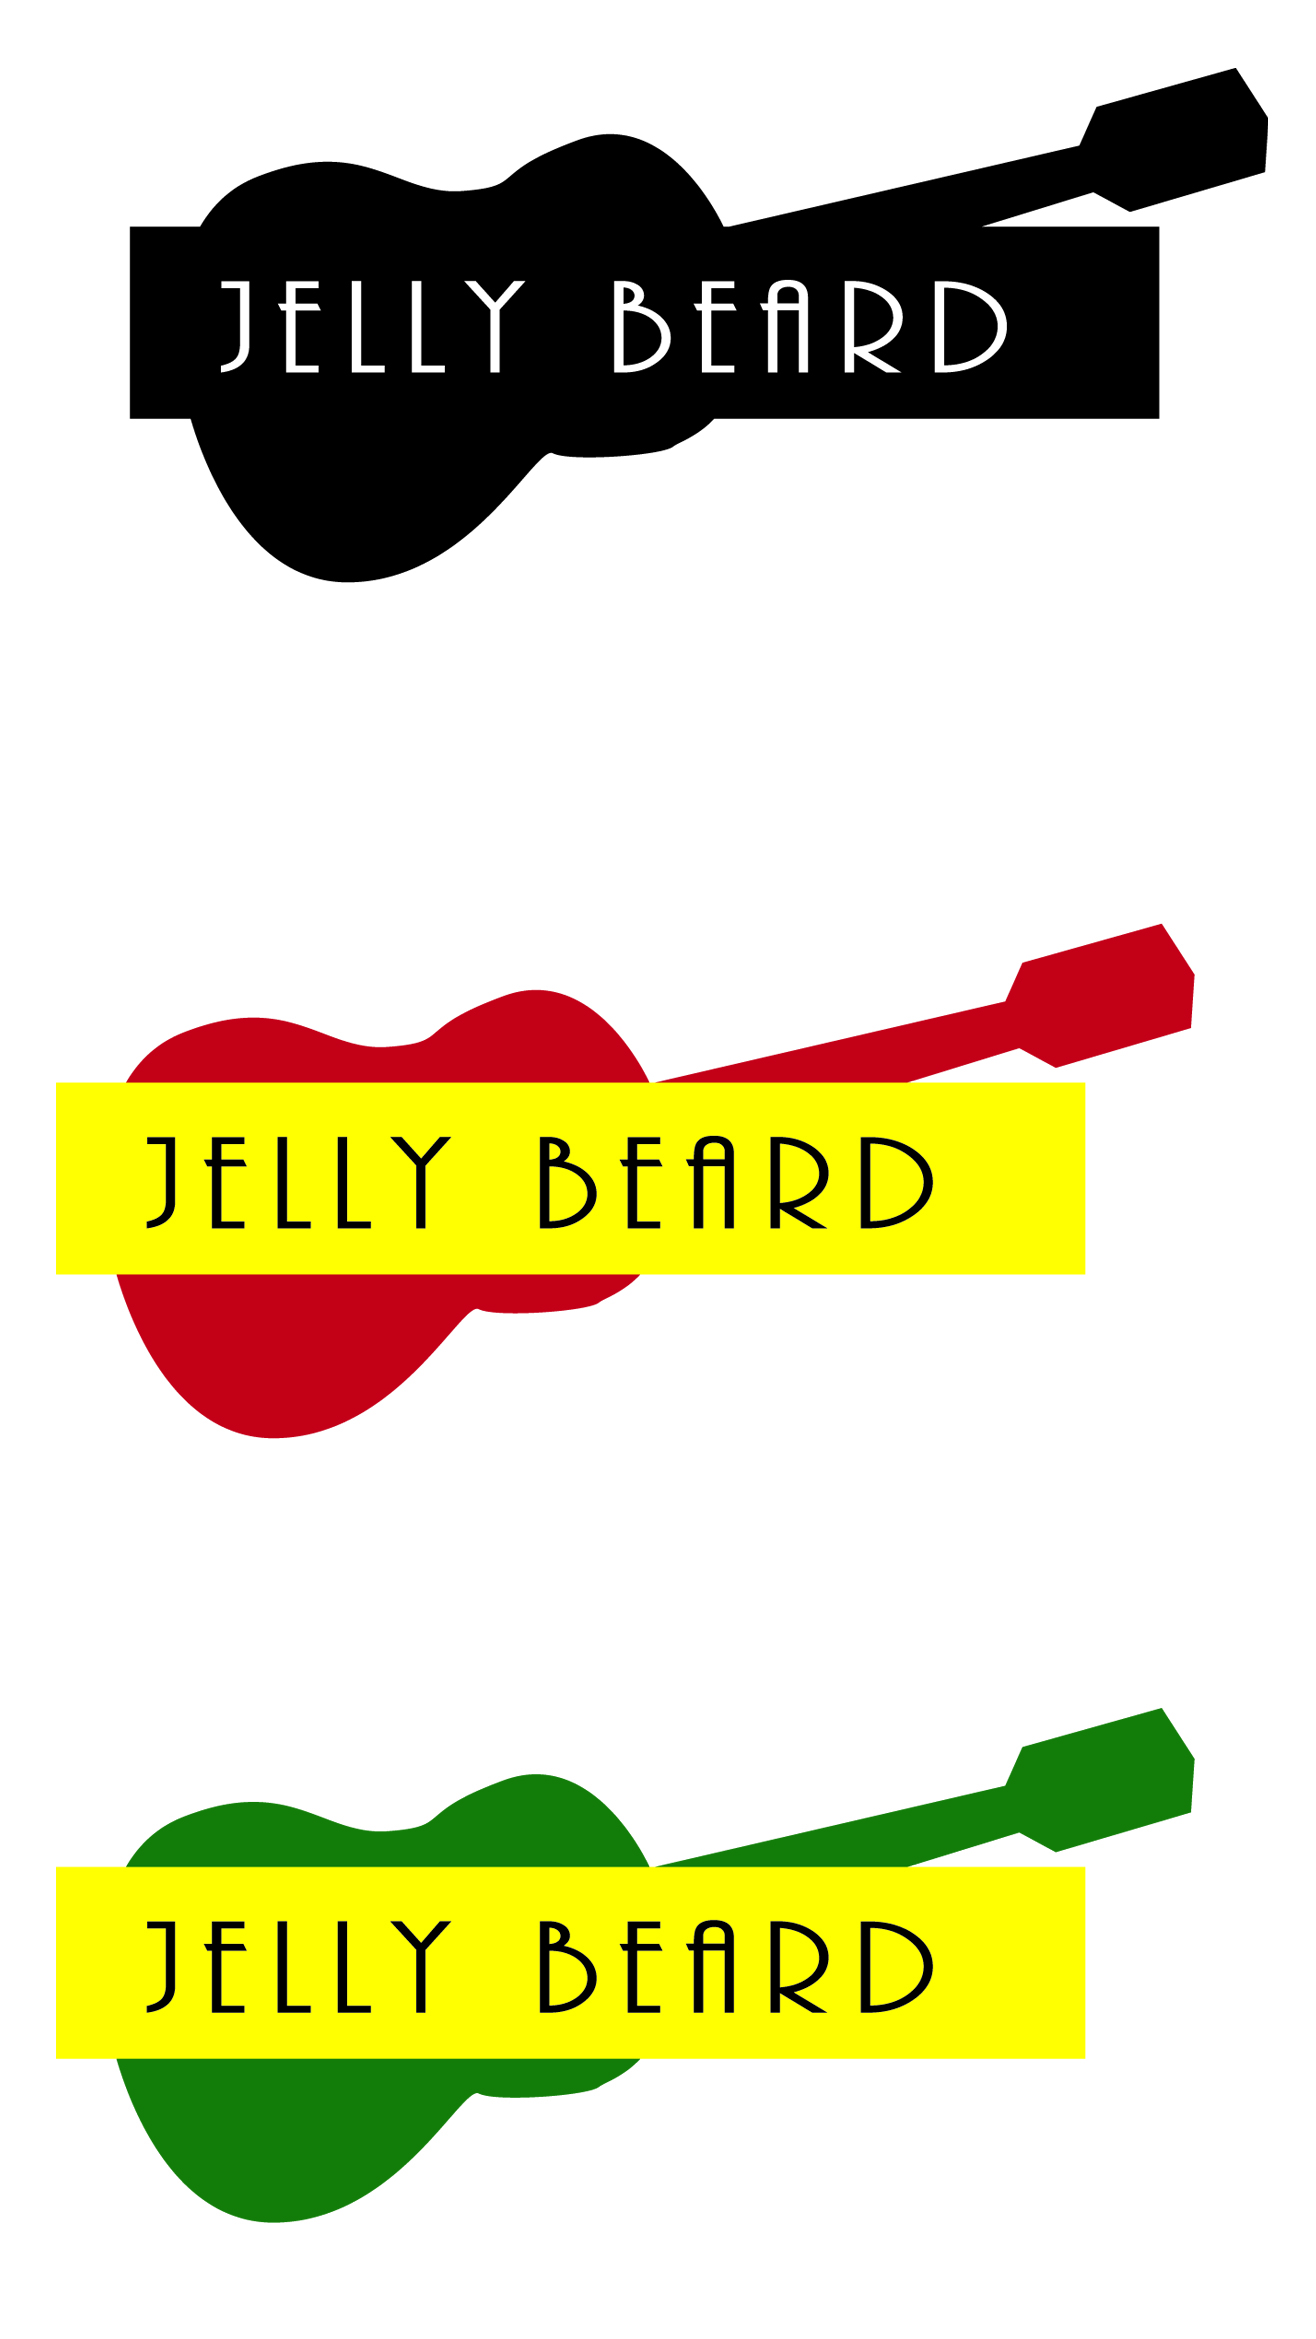 Logo Design by V Anil Yadavv - Entry No. 60 in the Logo Design Contest jellybeard Logo Design.